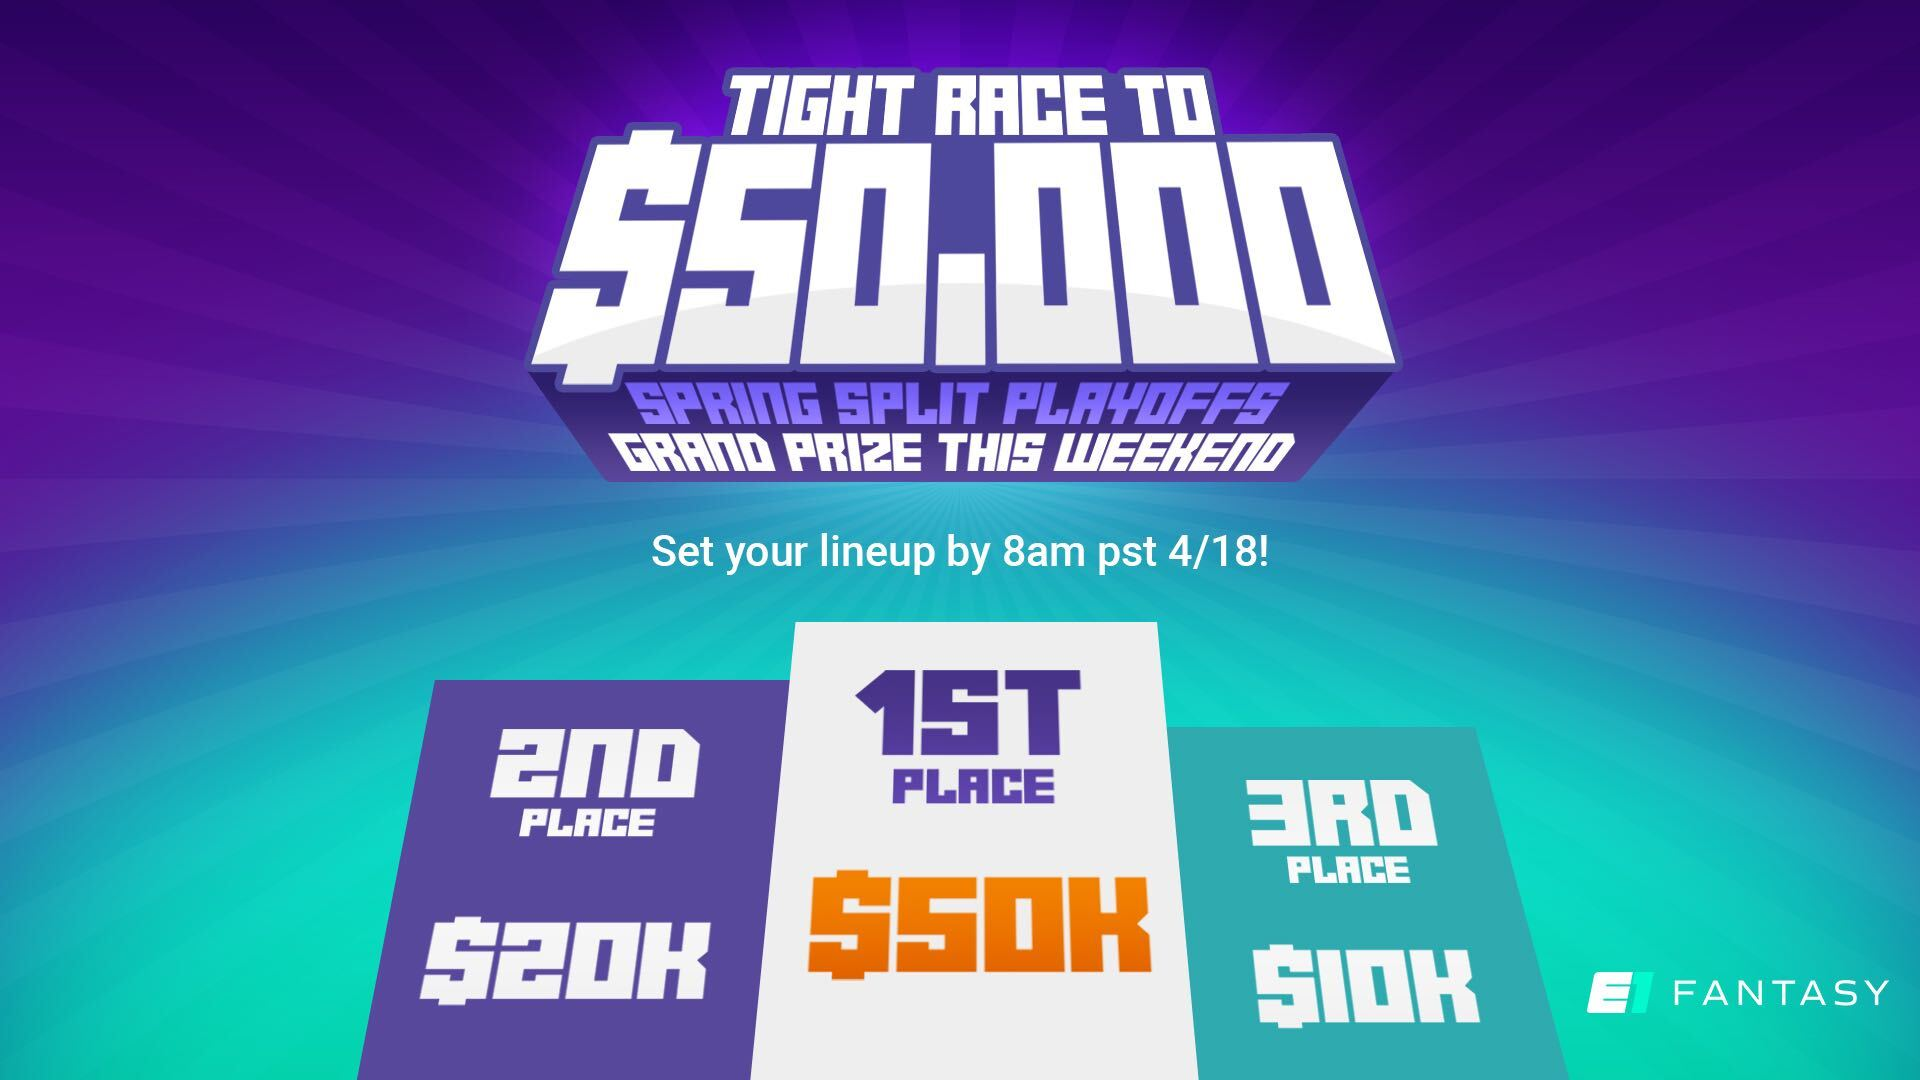 The Race to $50K